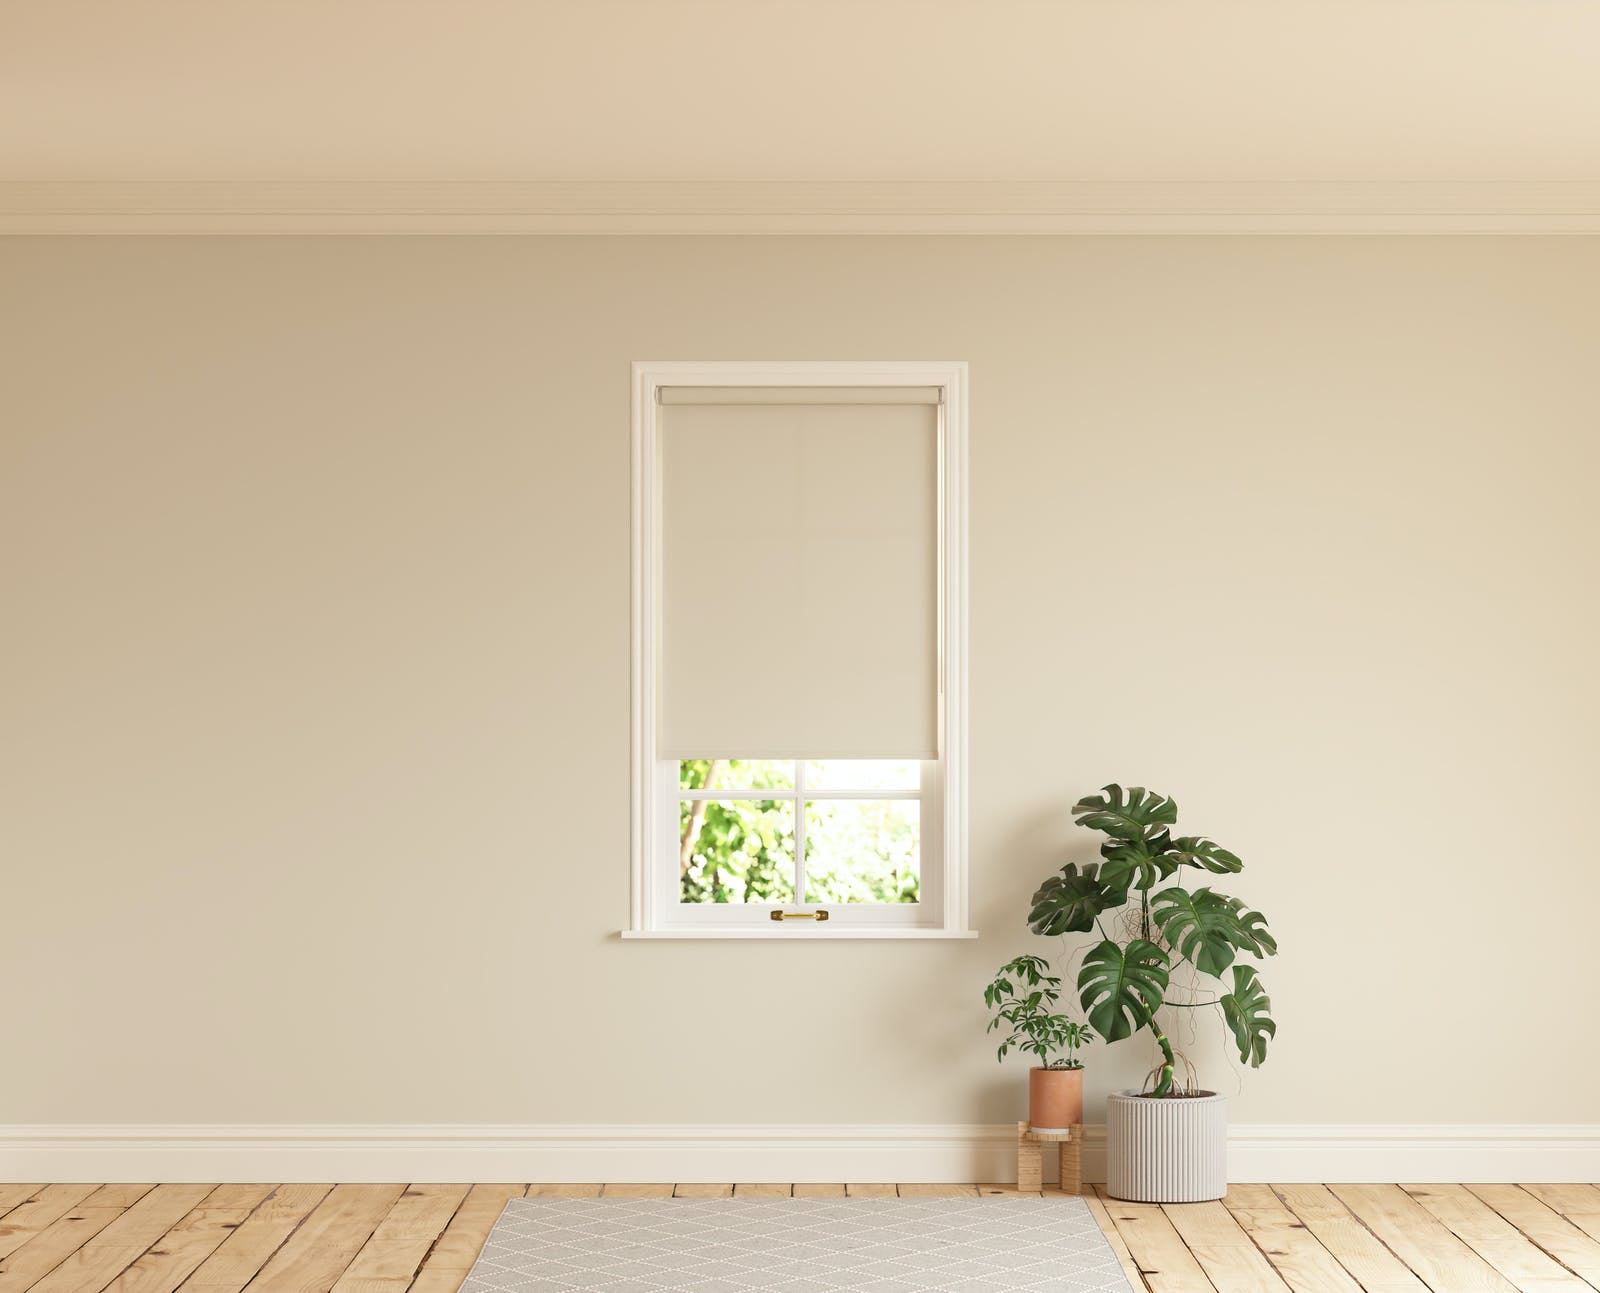 Room with walls painted in Lick Beige 01 and Beige 01 roller blinds